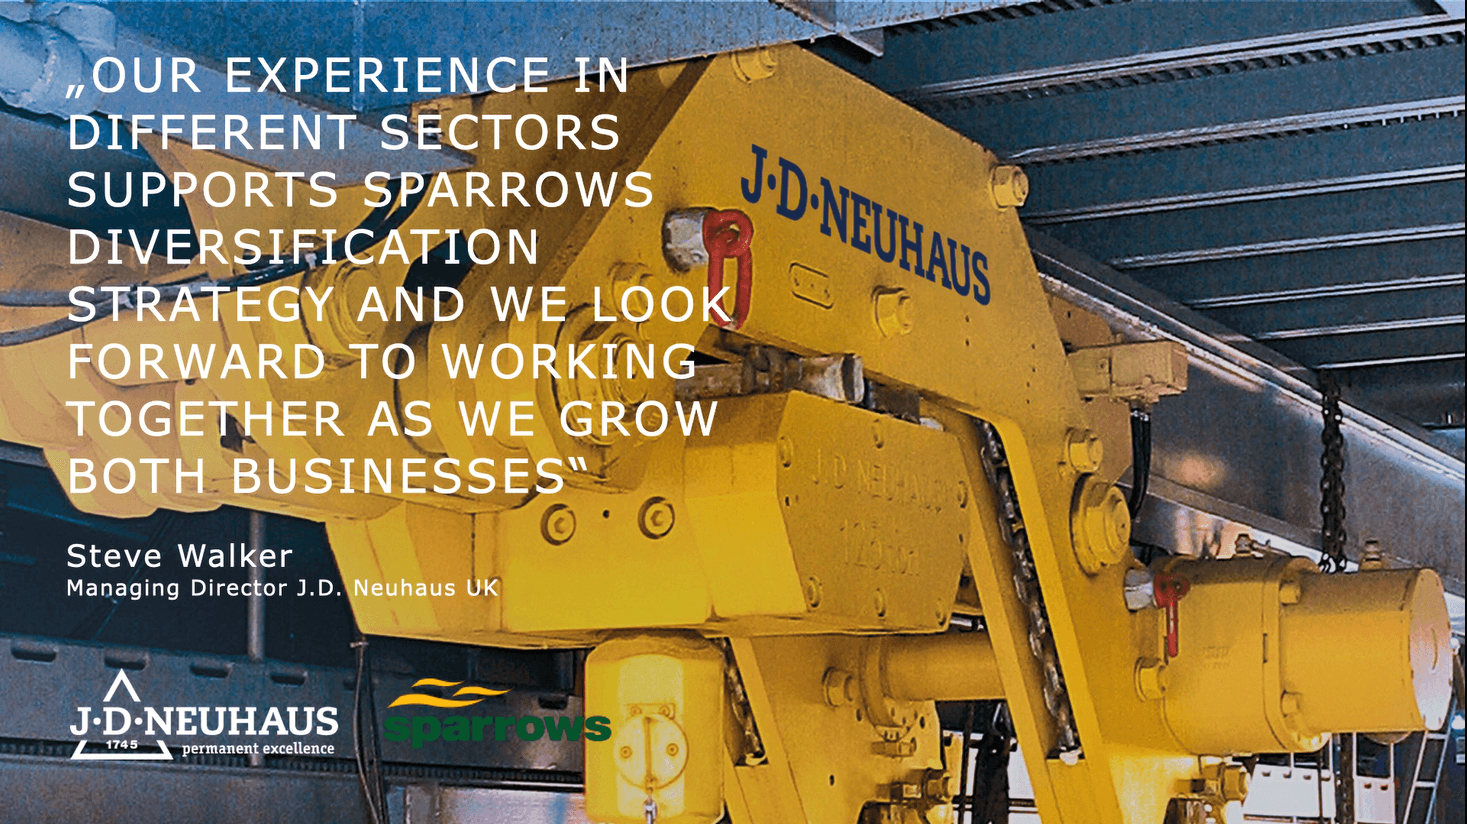 Partnership with Sparrows Group